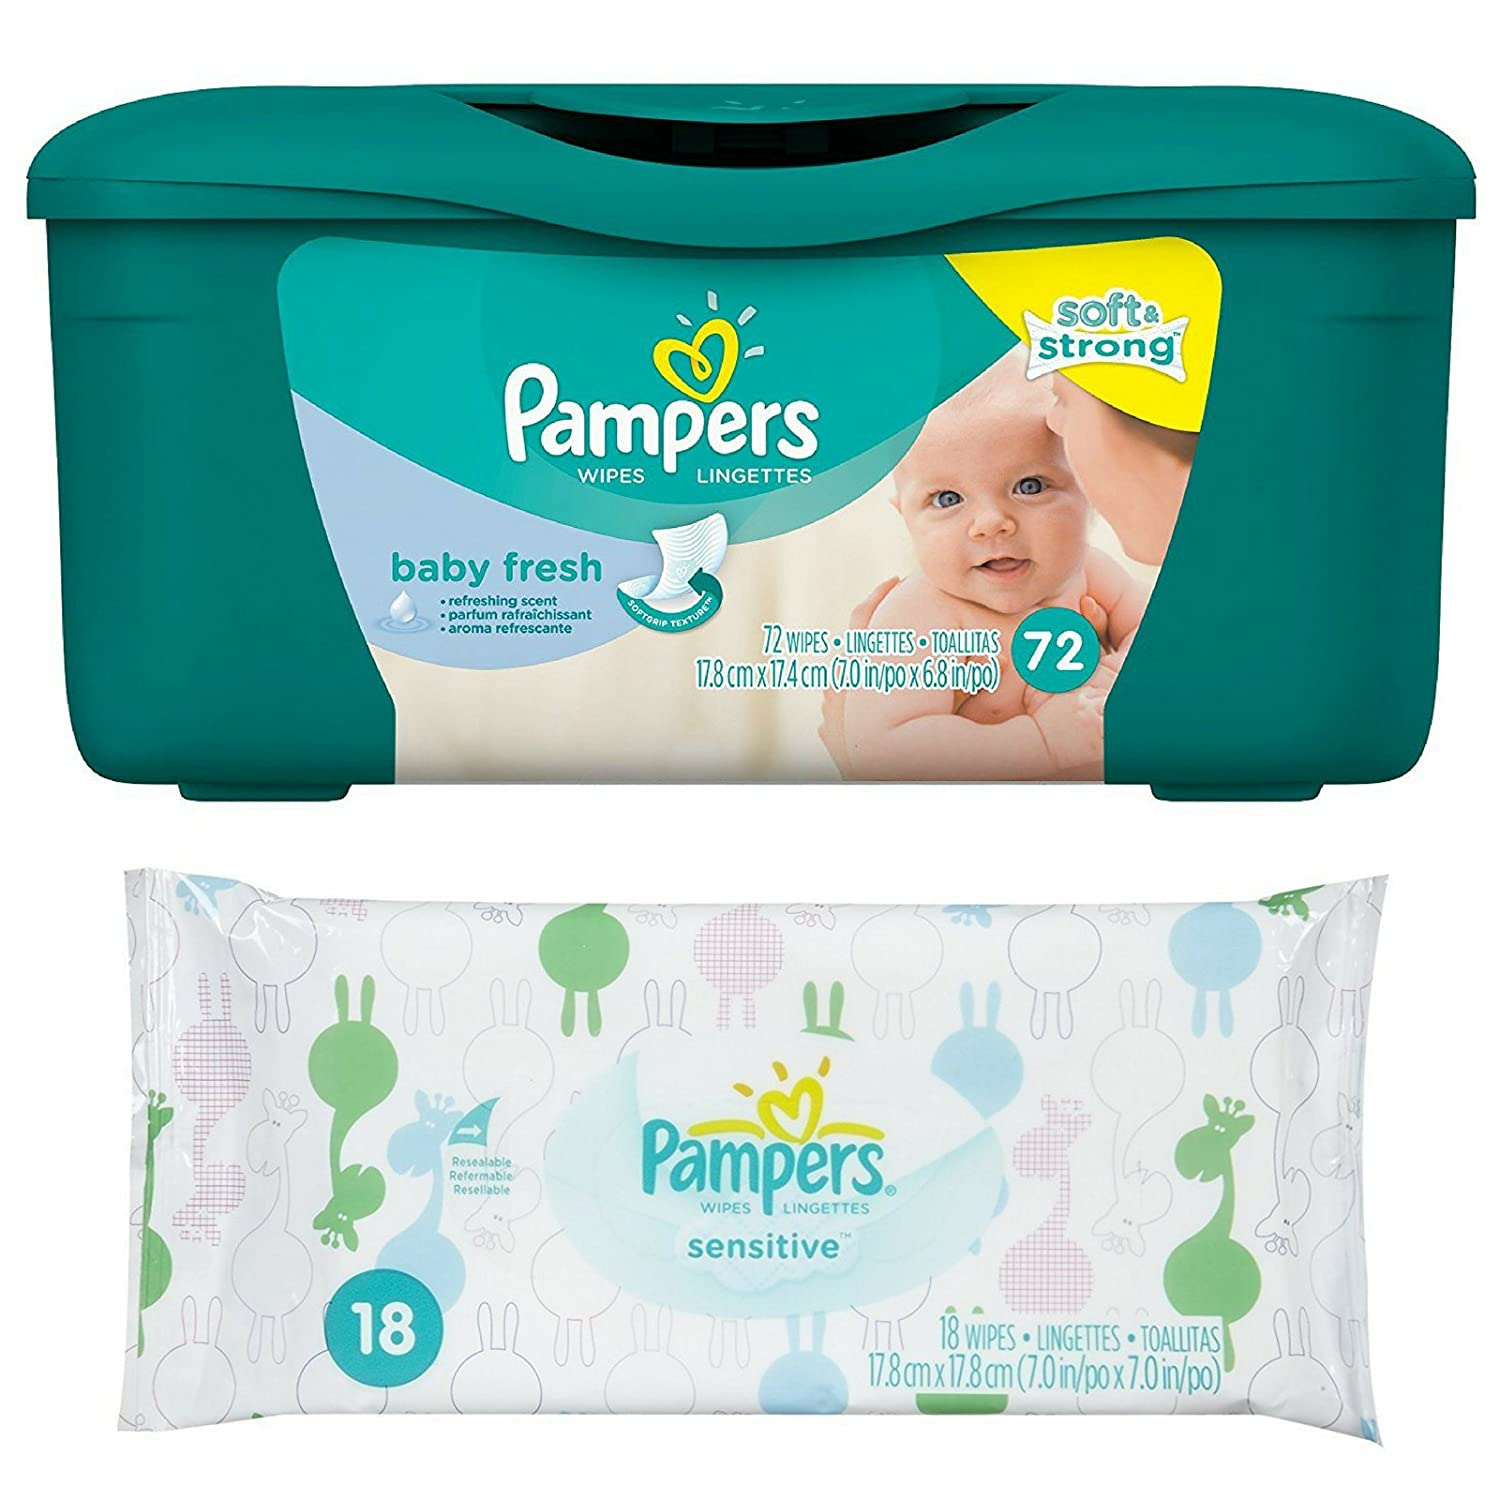 Amazon.com: Pampers Baby Fresh Wipes Tub, 72 ct + Additional Sensitive Wipes Travel Pack 18 ct: Health & Personal Care